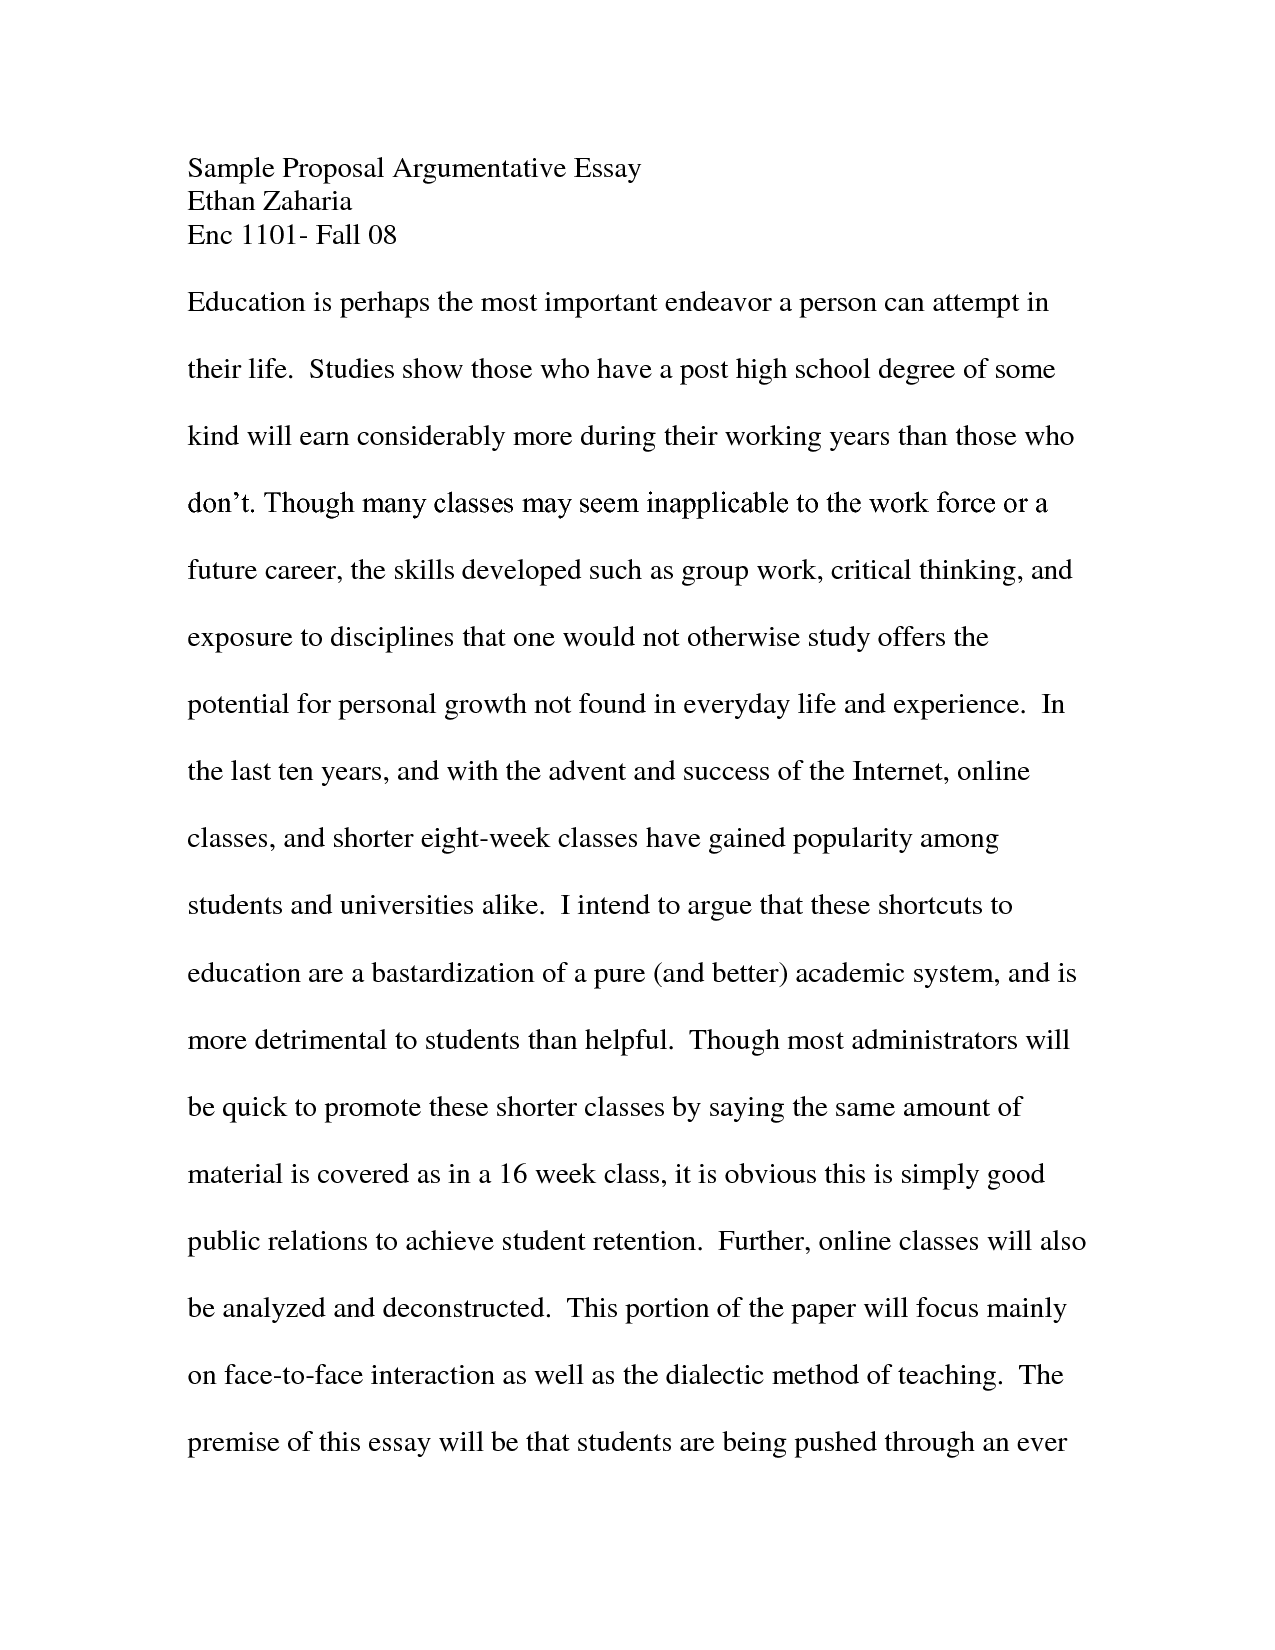 002 What Is Synthesis Essay 3d7hsocgst Staggering A Example Which Best Describes And Response The Structure Of Full